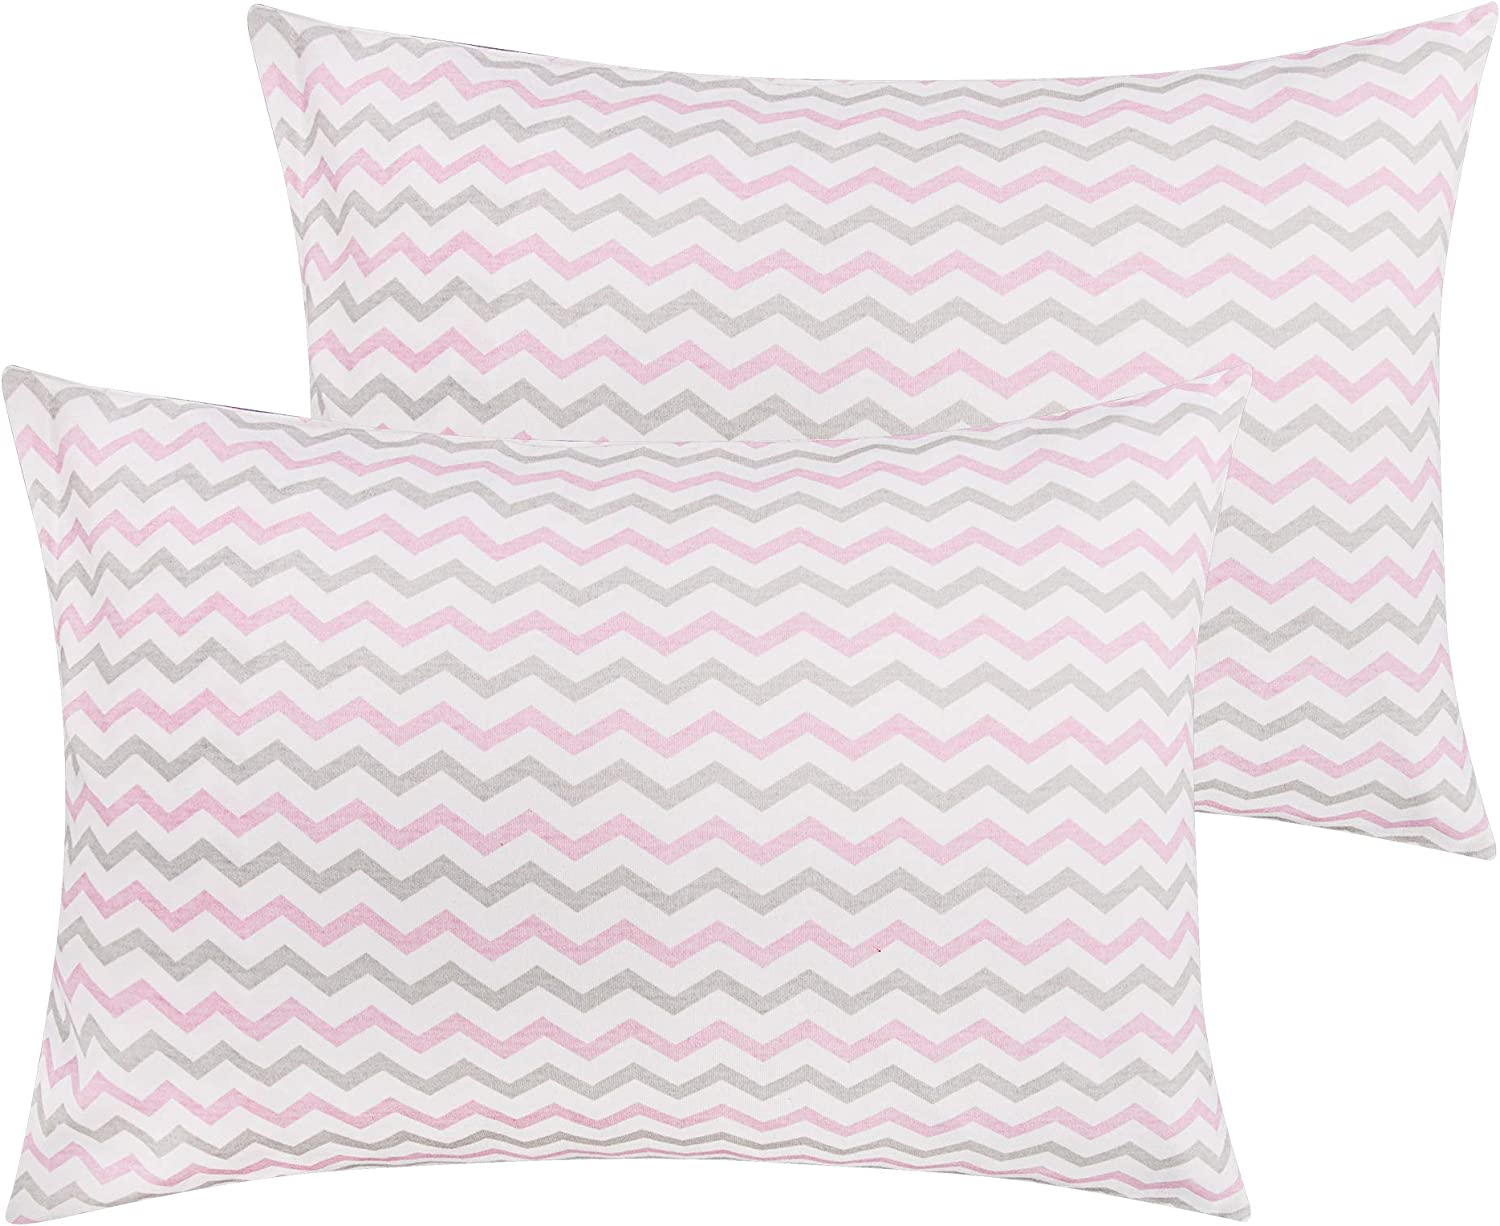 "NTBAY Natural Cotton Jersey Knit Toddler Pillowcases, 2 Pcs Soft and Breathable Travel Pillowcase Cover with Envelope Closure, for Boys and Girls, 13""x 18"", Pink Wave"